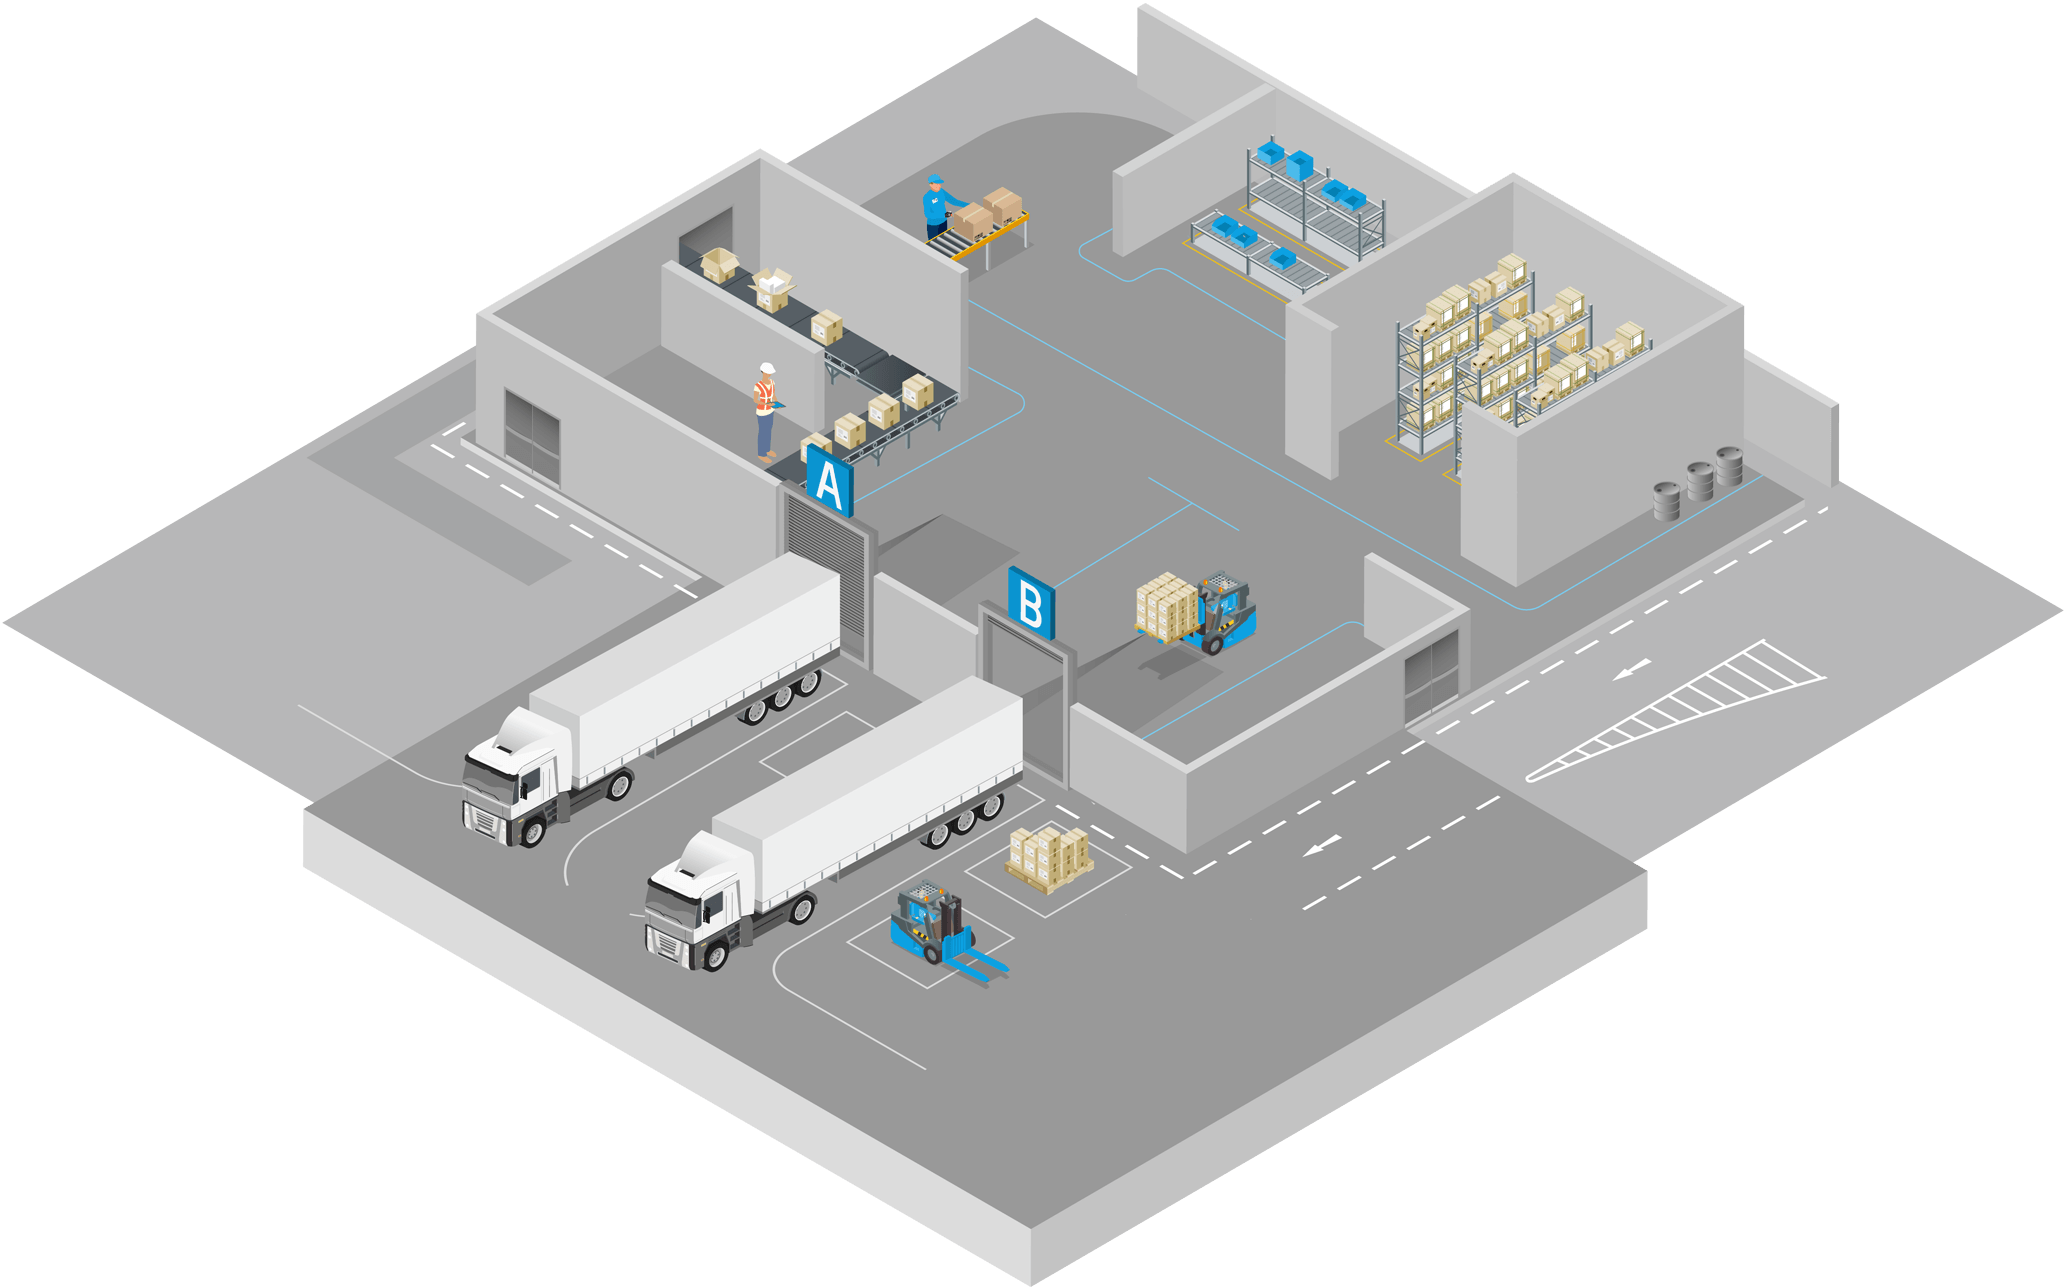 3D top view of typical logistics processes